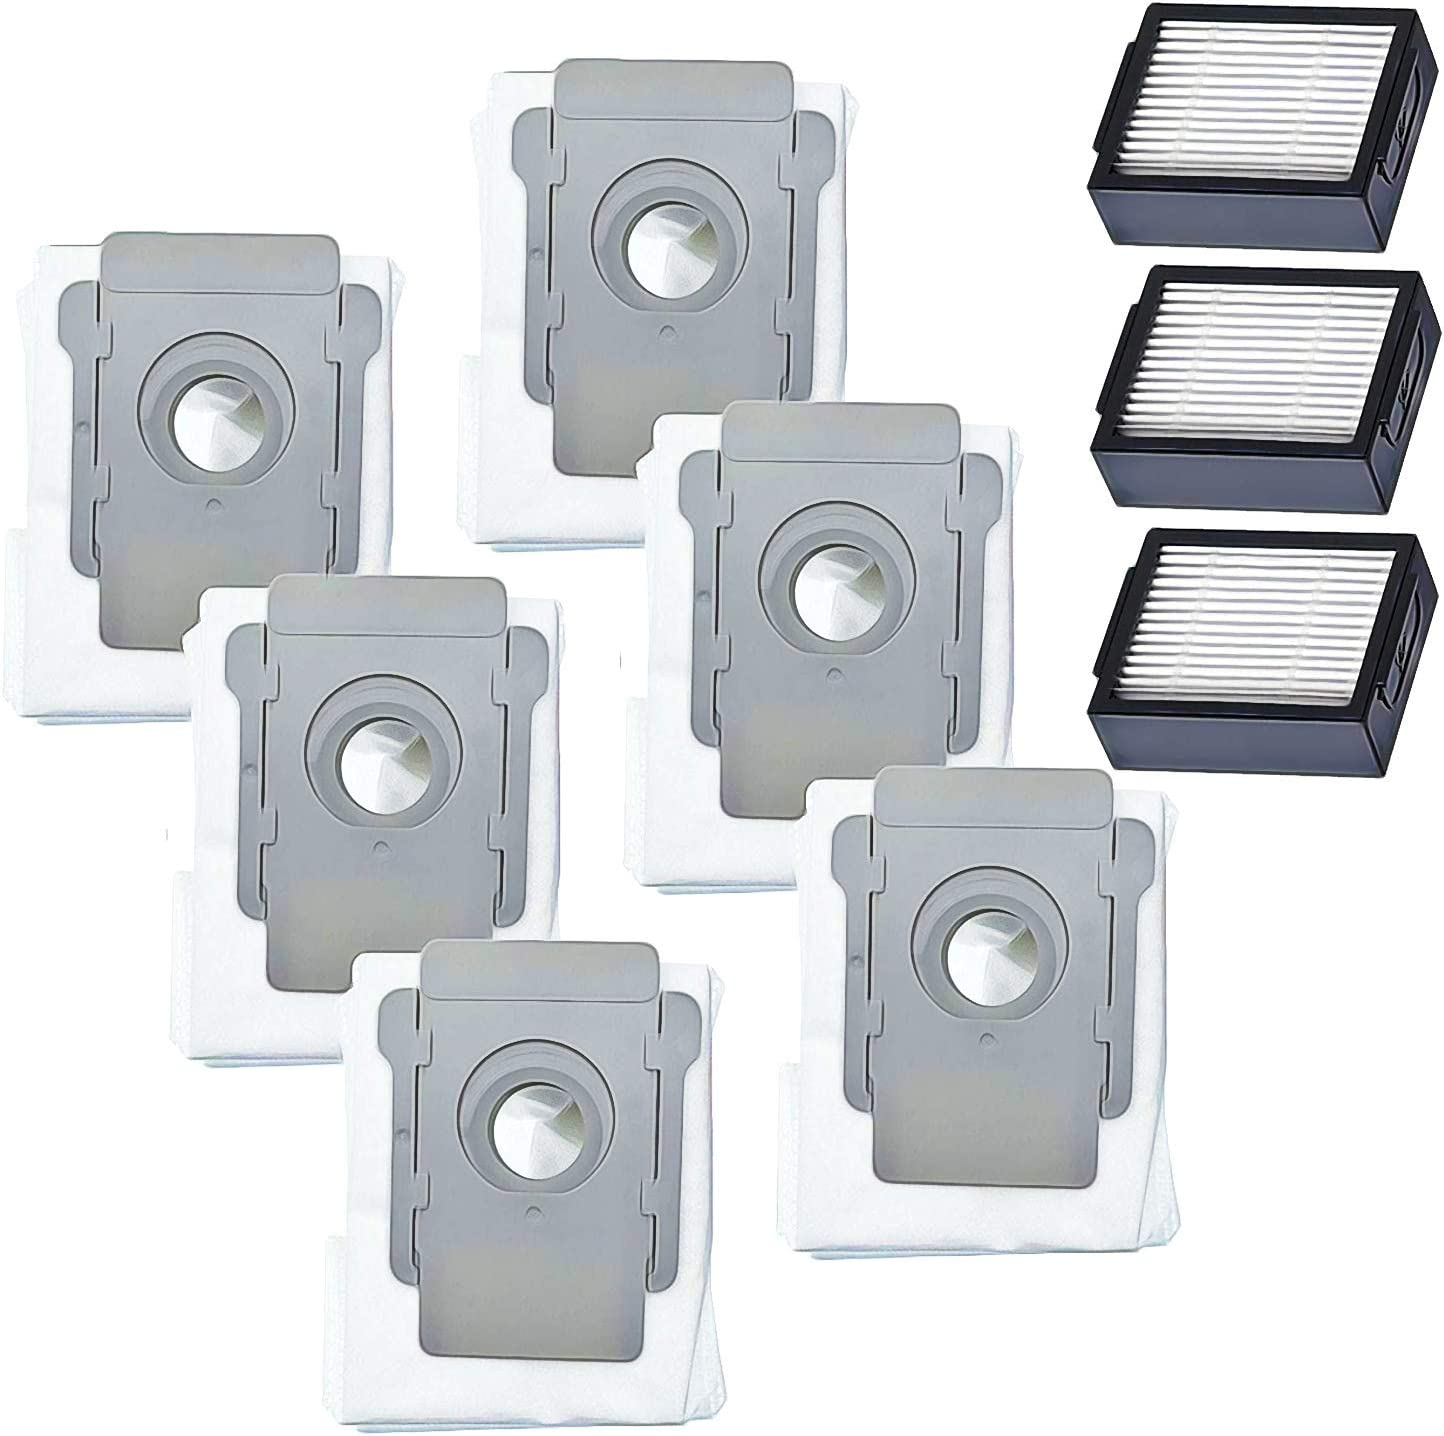 ZVac iRobot Roomba Replacement Parts - Compatible with i7, i7+, S9, S9+, E5, and E6 Vacuum Cleaner Series - 6-Pack HEPA Disposable Dust Bags with 3 High-Efficiency Filters for Parts 4640235, 4639161